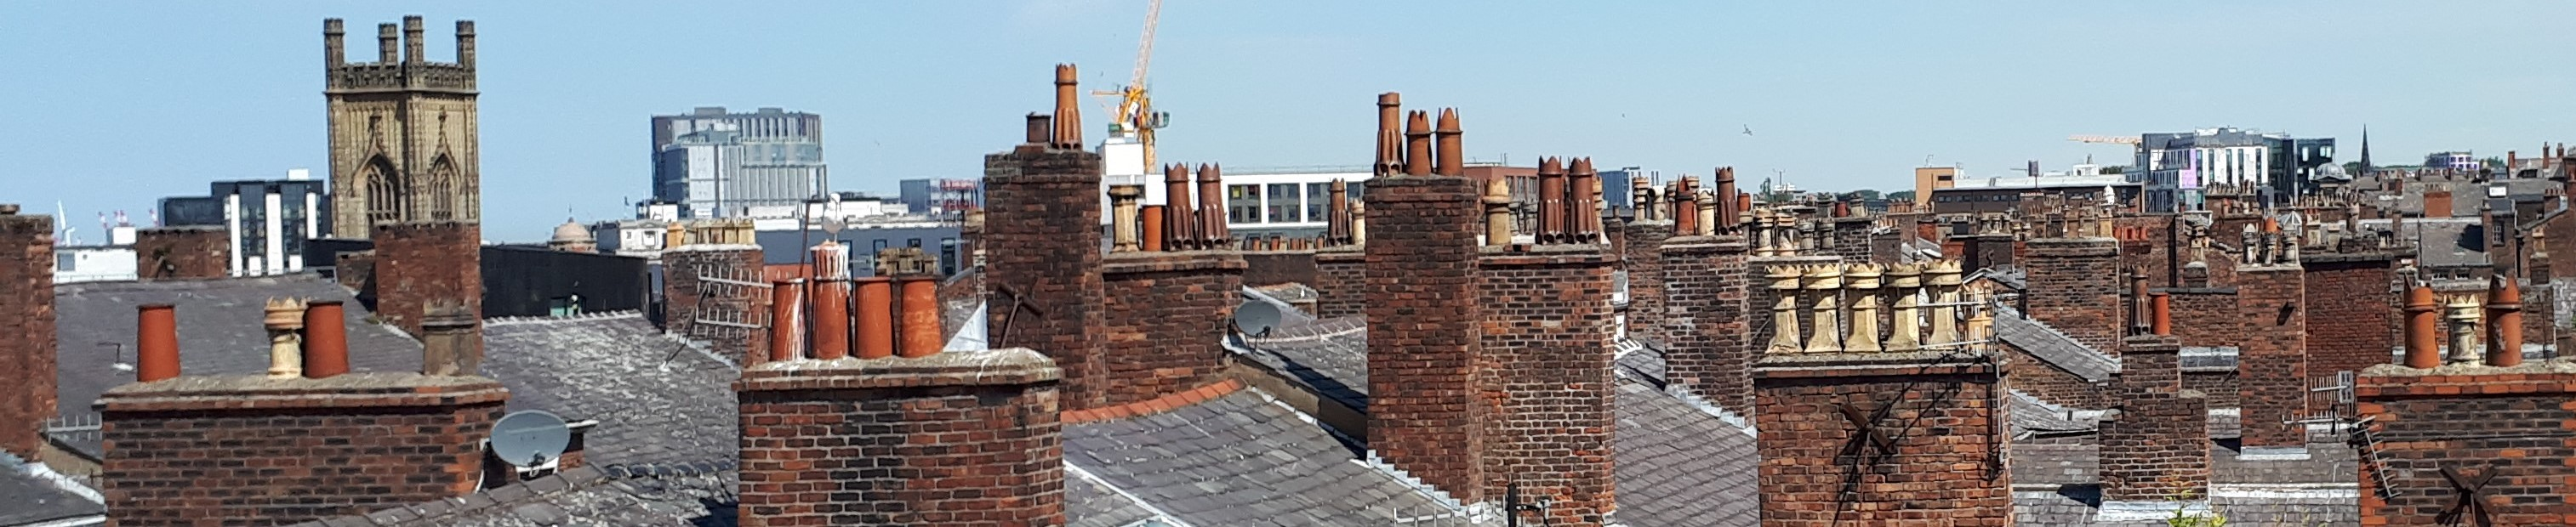 Photograph of roof tops and chimneys in Liverpool.